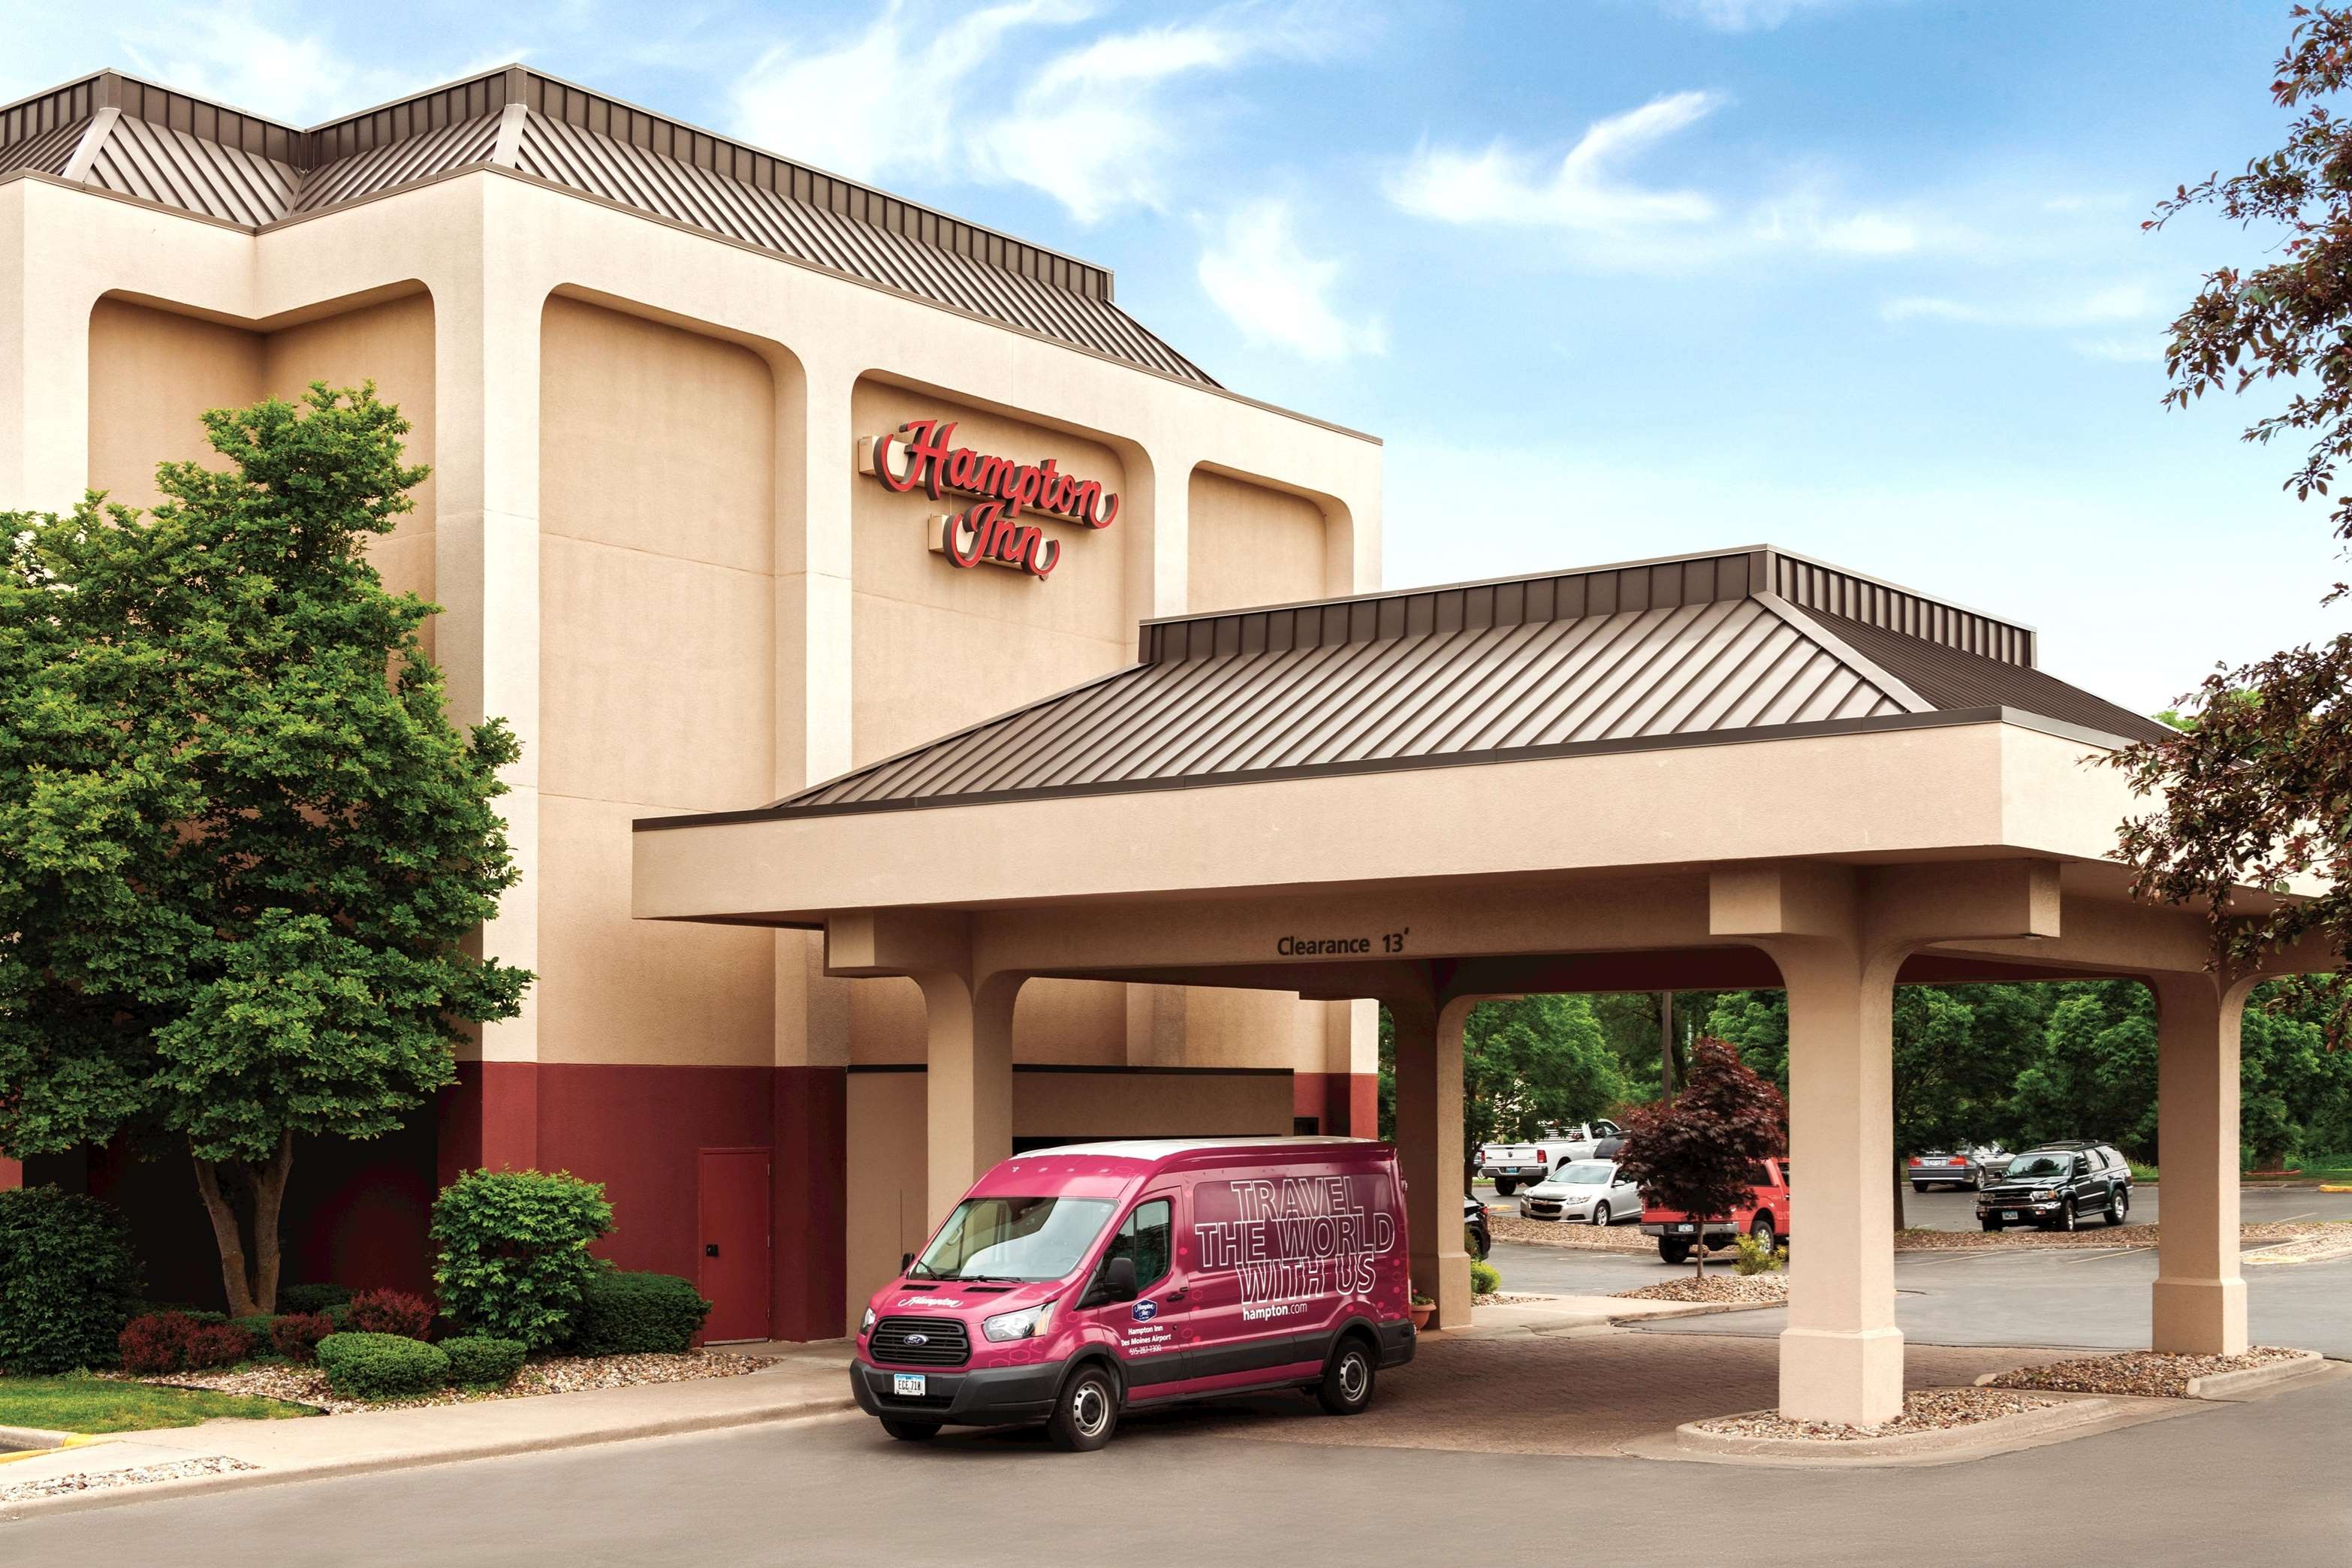 Hotels Near Airport In Des Moines Iowa